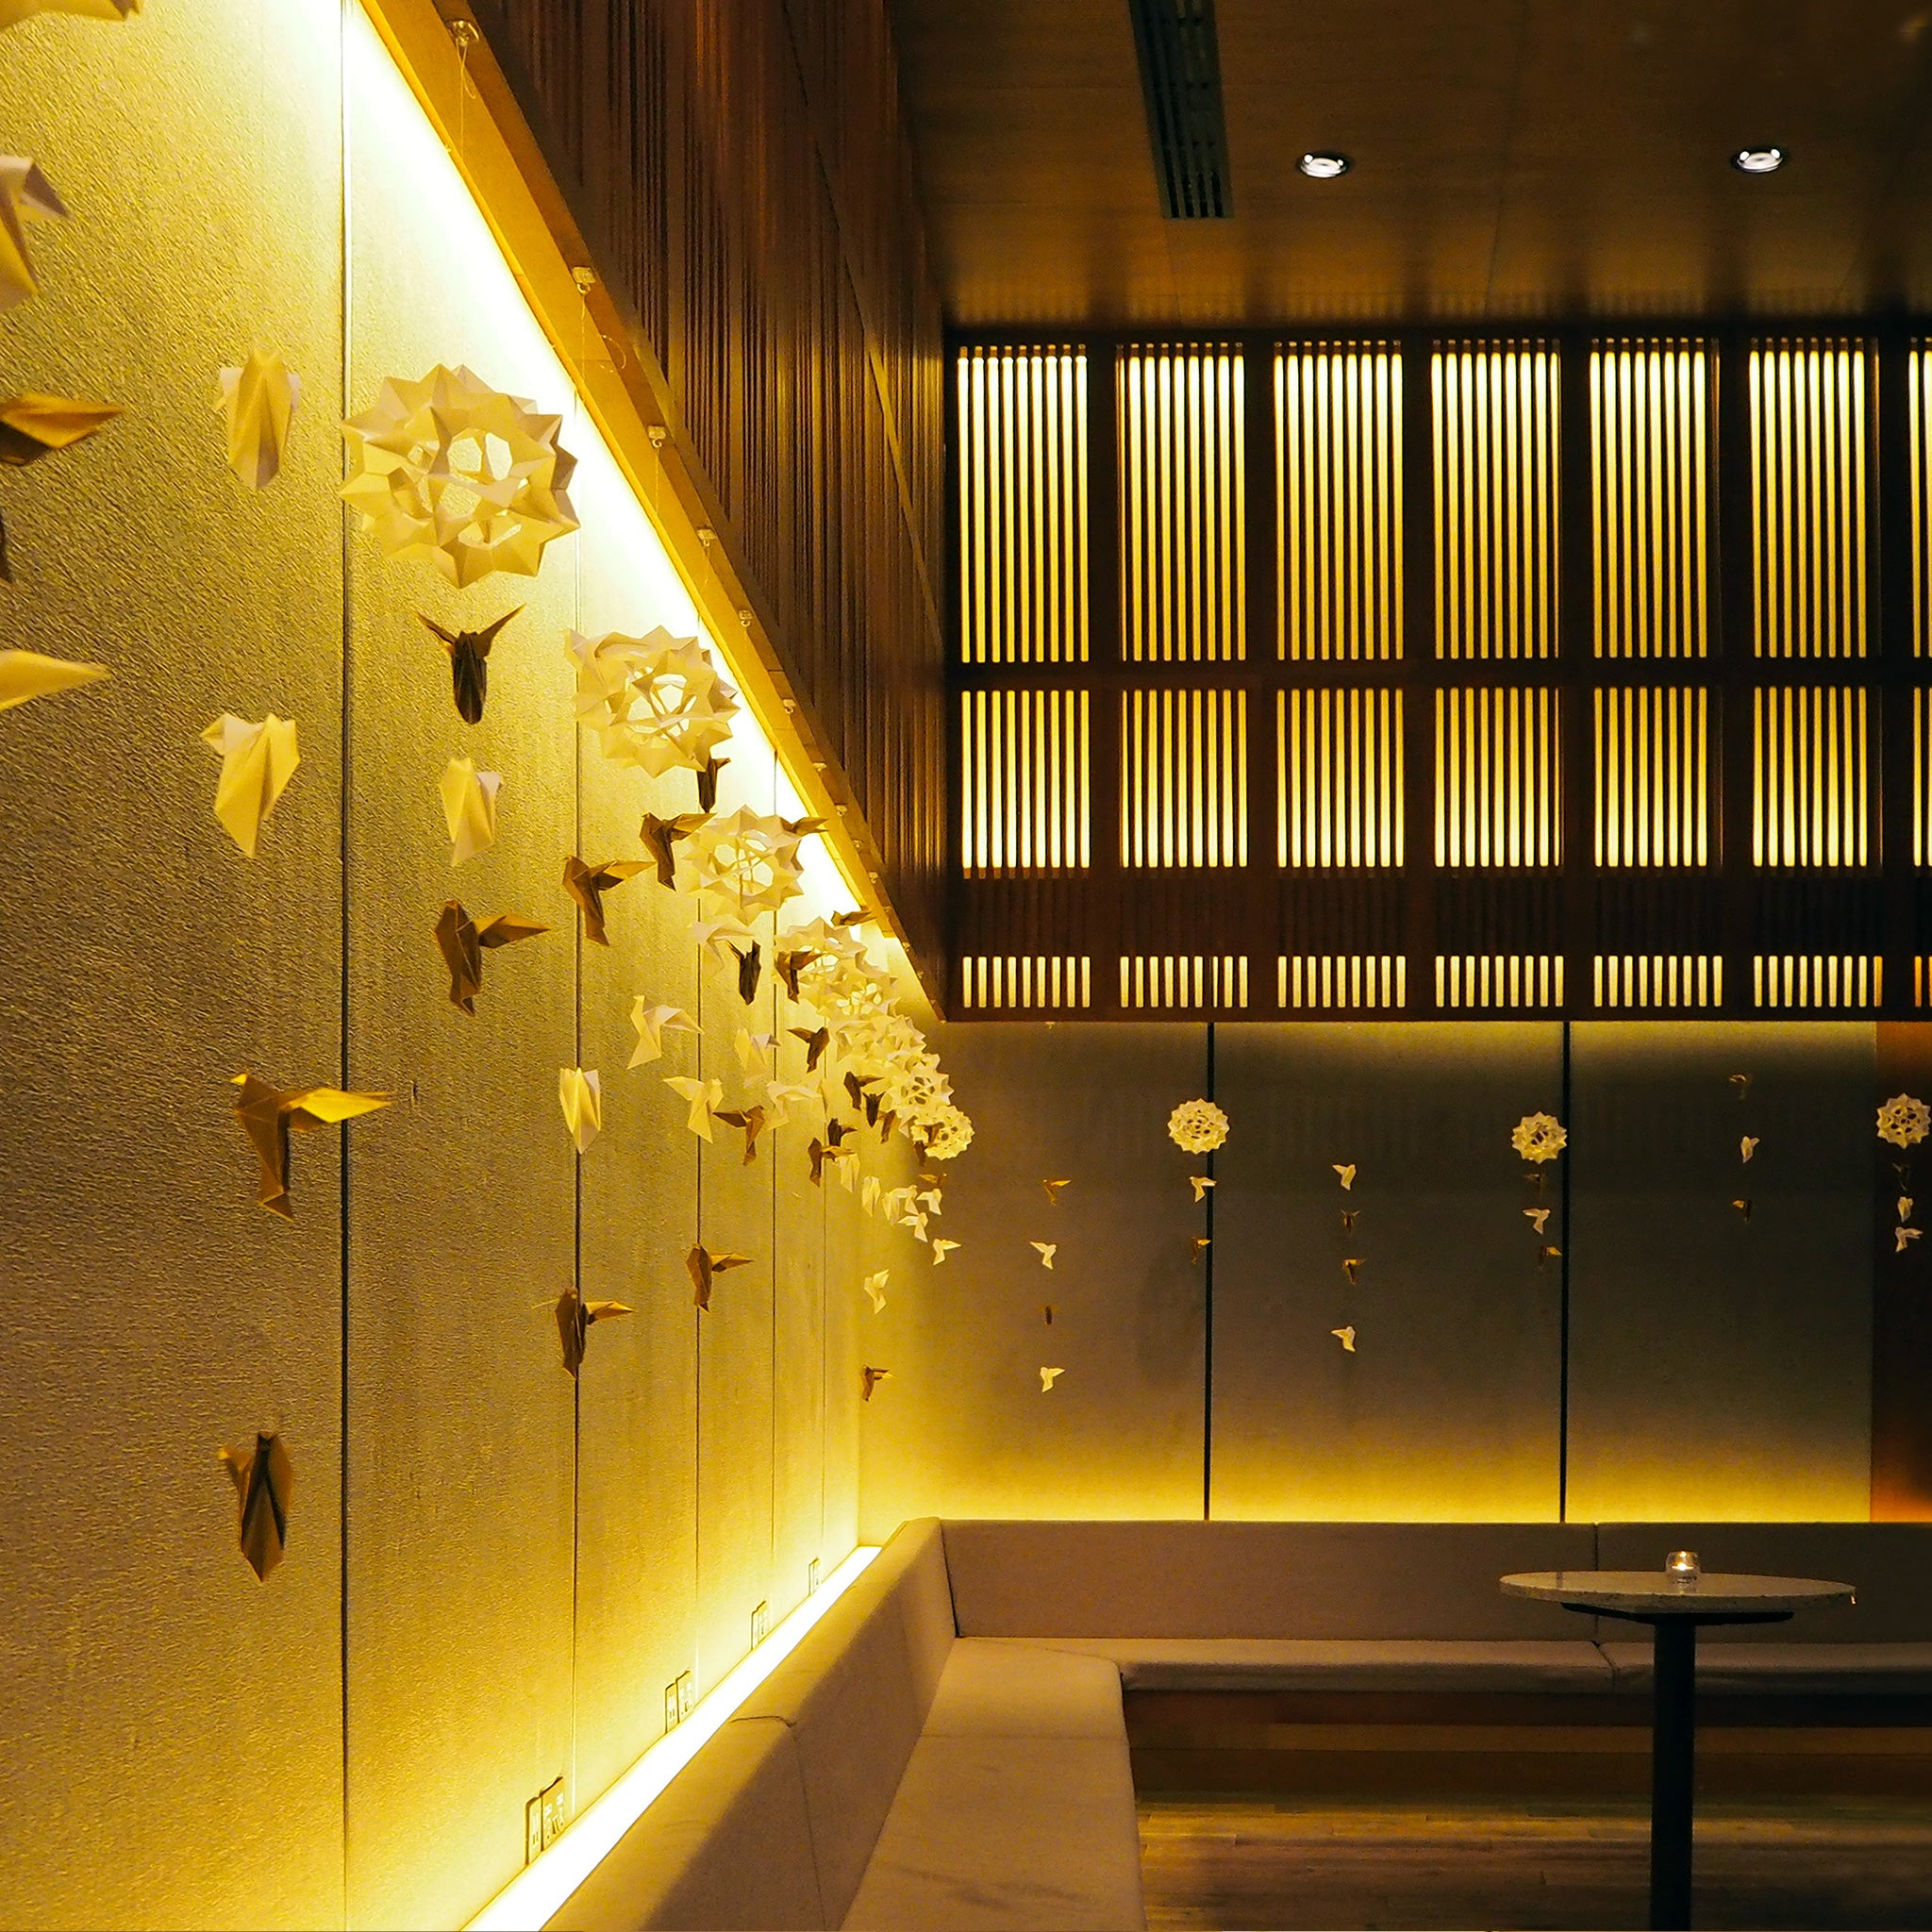 Bespoke hanging origami decoration for business event held at Japanese Hotel in East London